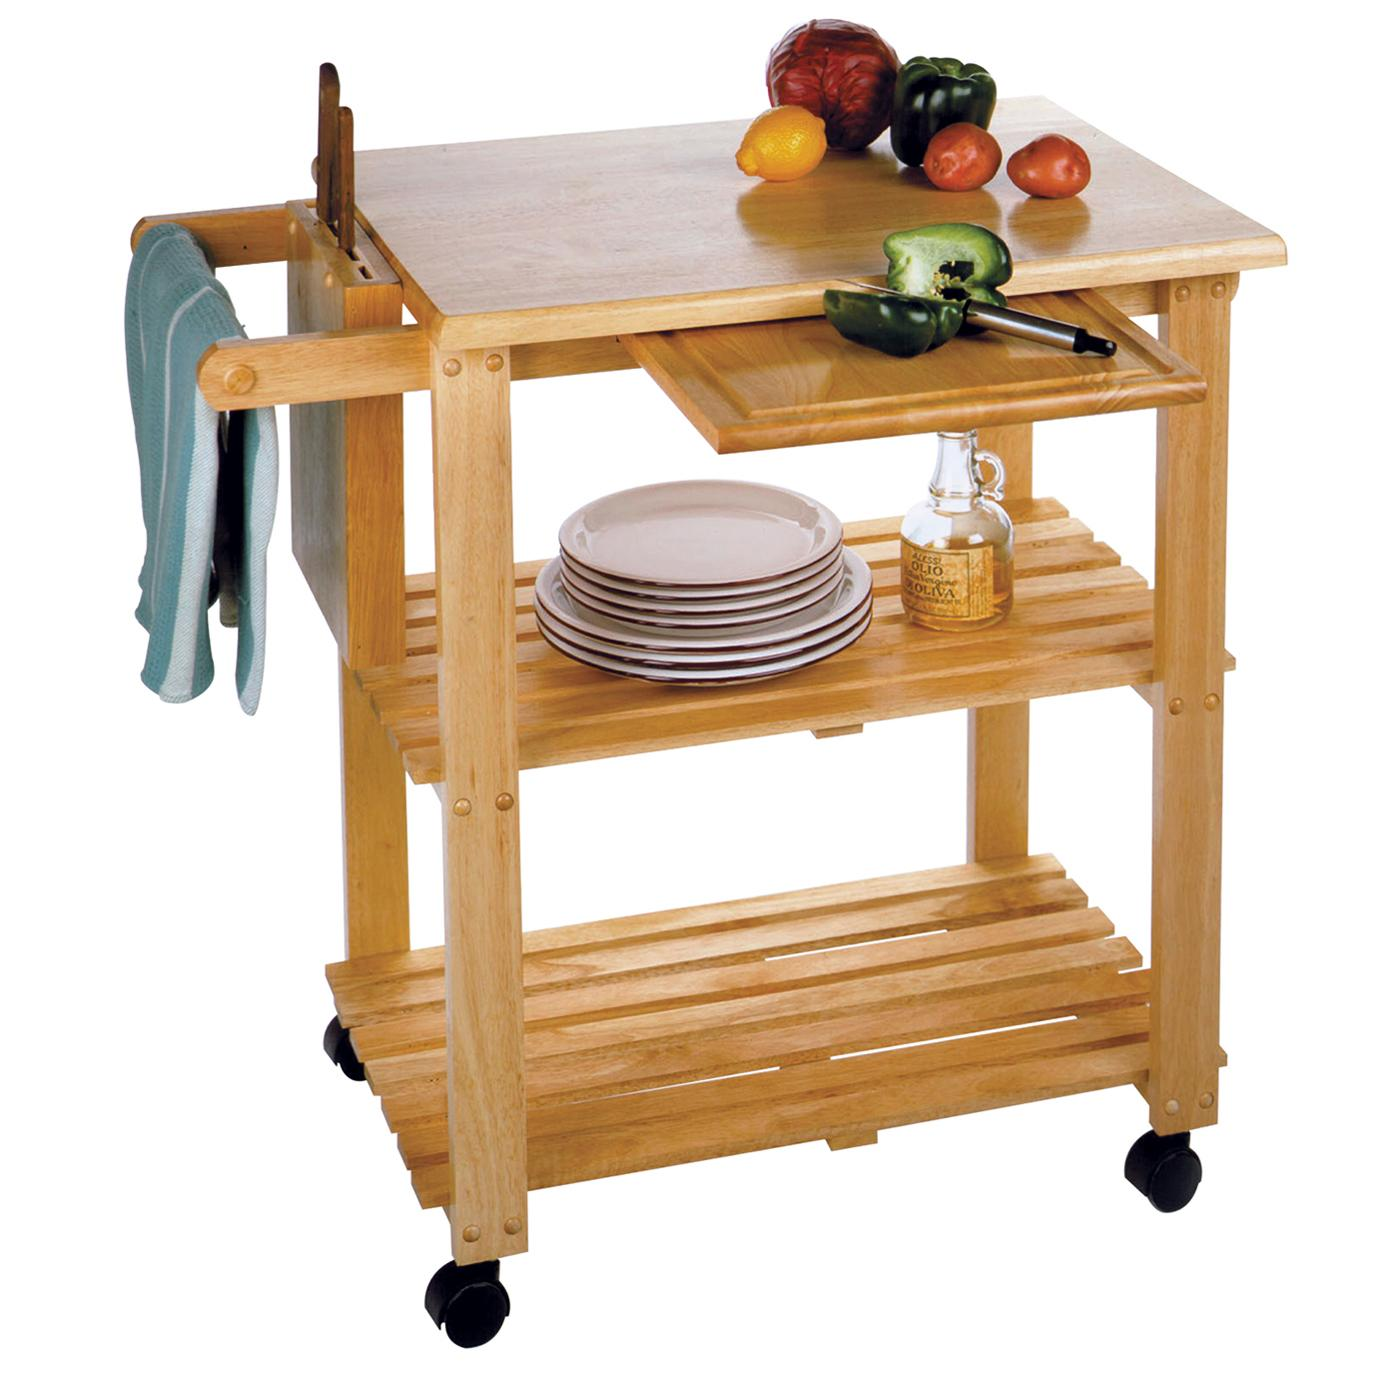 Cutting Board With Knife Holder Winsome Kitchen Cart With Cutting Board Knife Block And